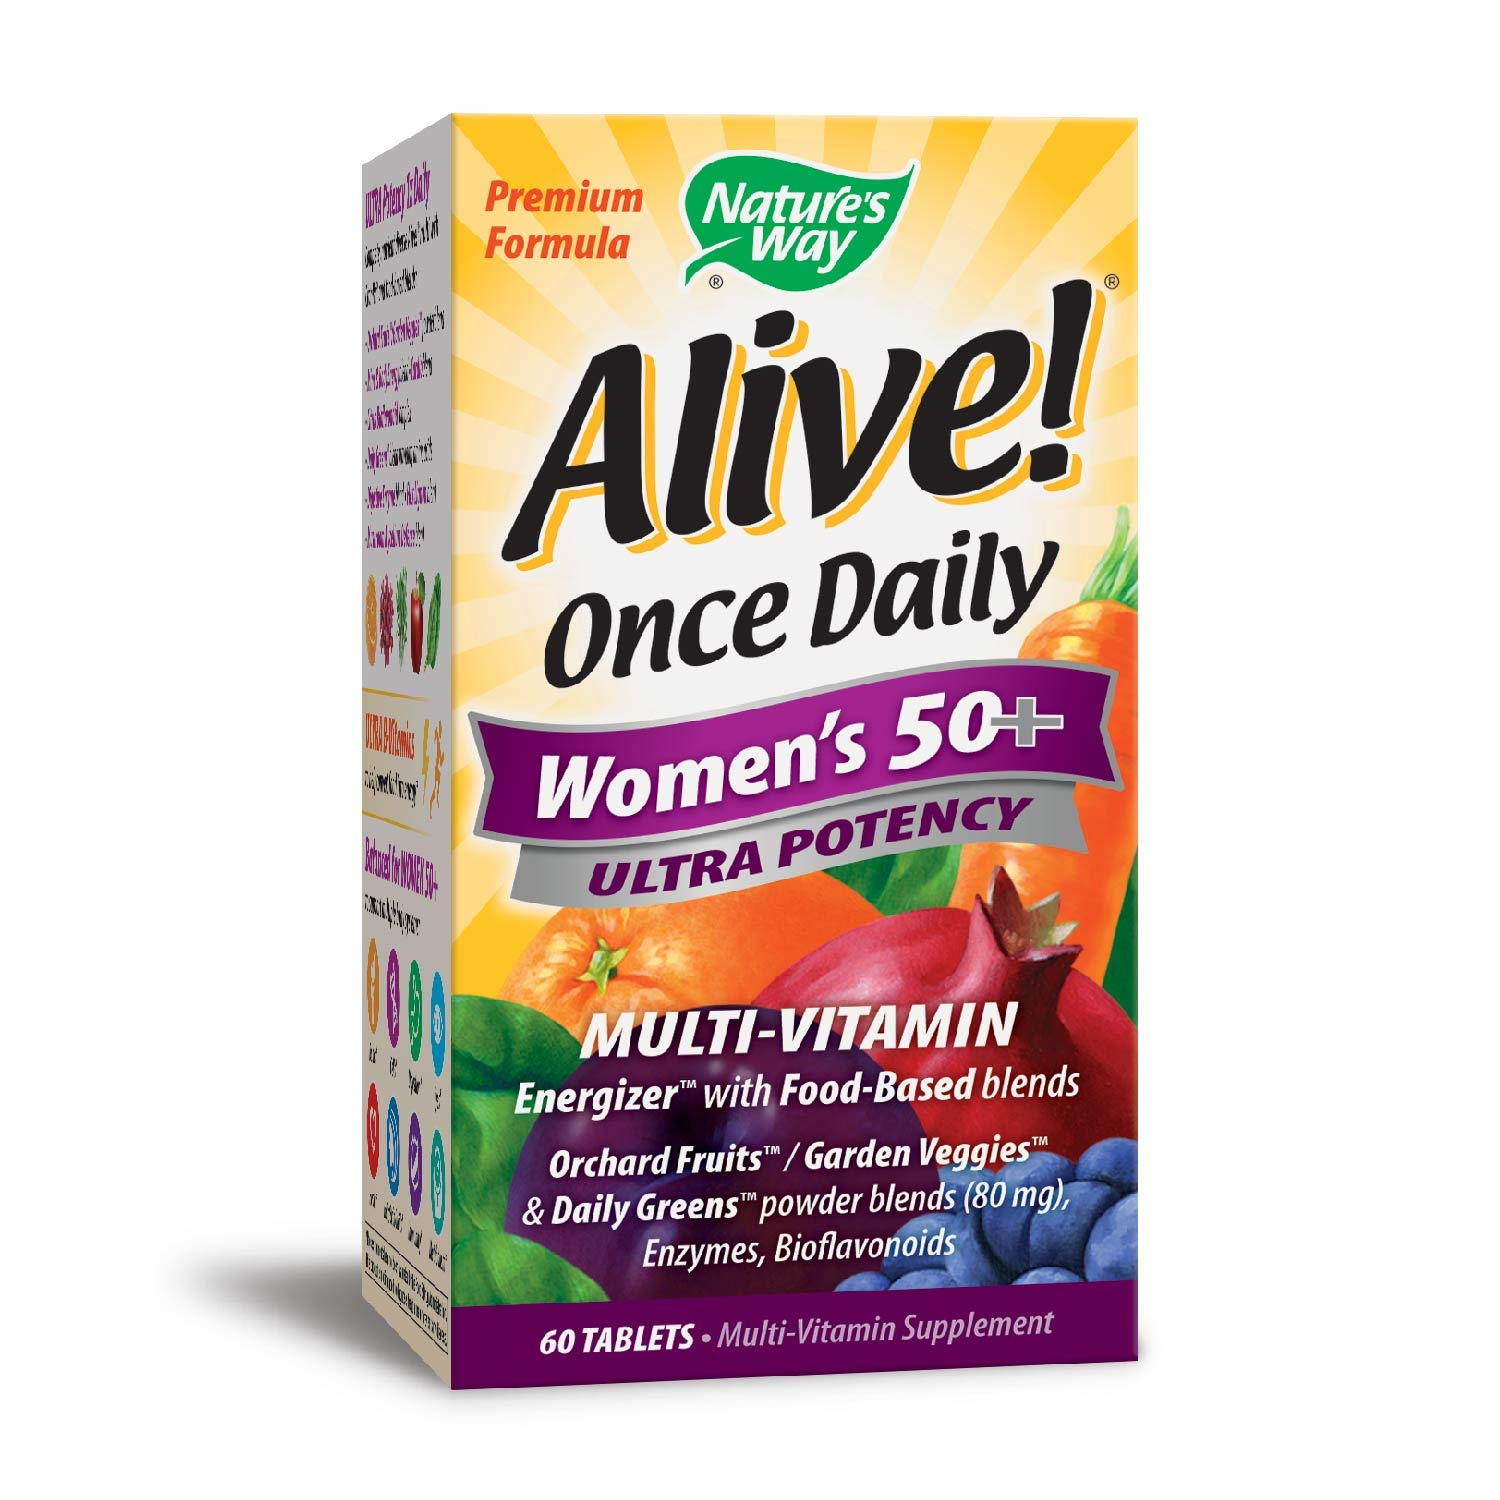 Nature's Way Alive!® Once Daily Women's 50+ Multivitamin, Ultra Potency, Food-Based Blends (230mg per serving), 60 Tablets